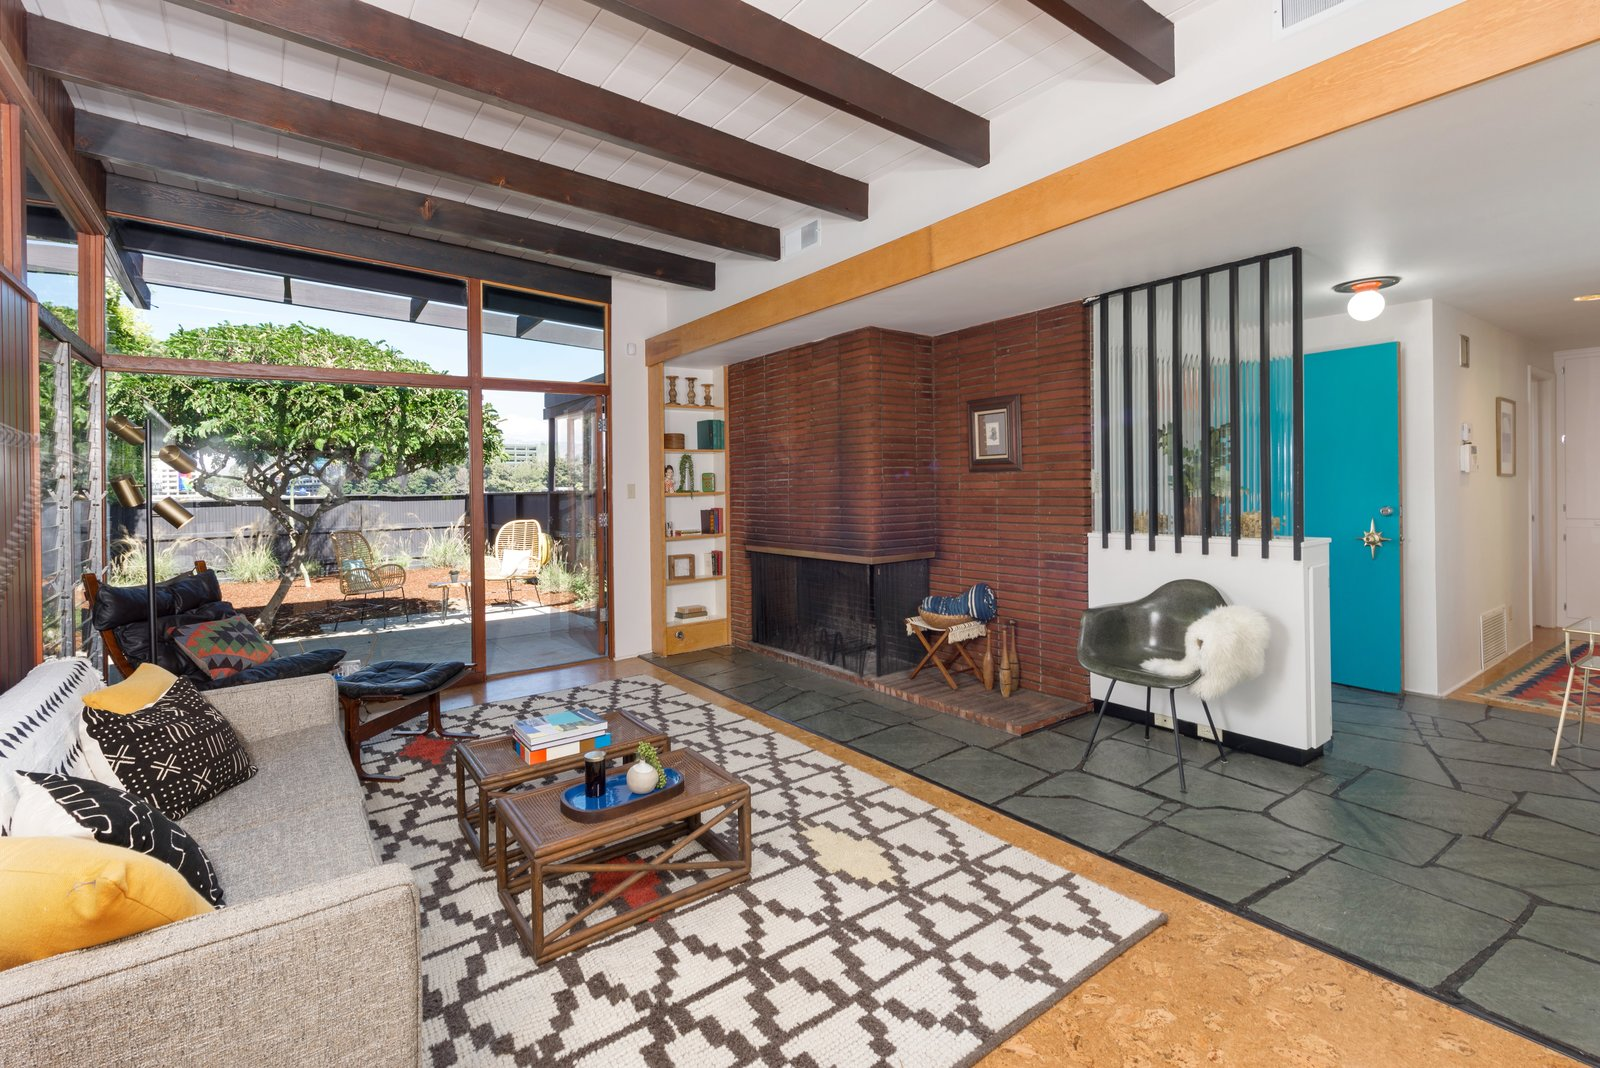 Living Room, Corner Fireplace, Chair, Ceiling Lighting, Coffee Tables, Sofa, Slate Floor, Wood Burning Fireplace, Rug Floor, Shelves, and Cork Floor The open-plan living space is anchored by a horizontal brick-inlay fireplace.     Photo 3 of 17 in Snag This Hollywood Hills Midcentury Home For $1M